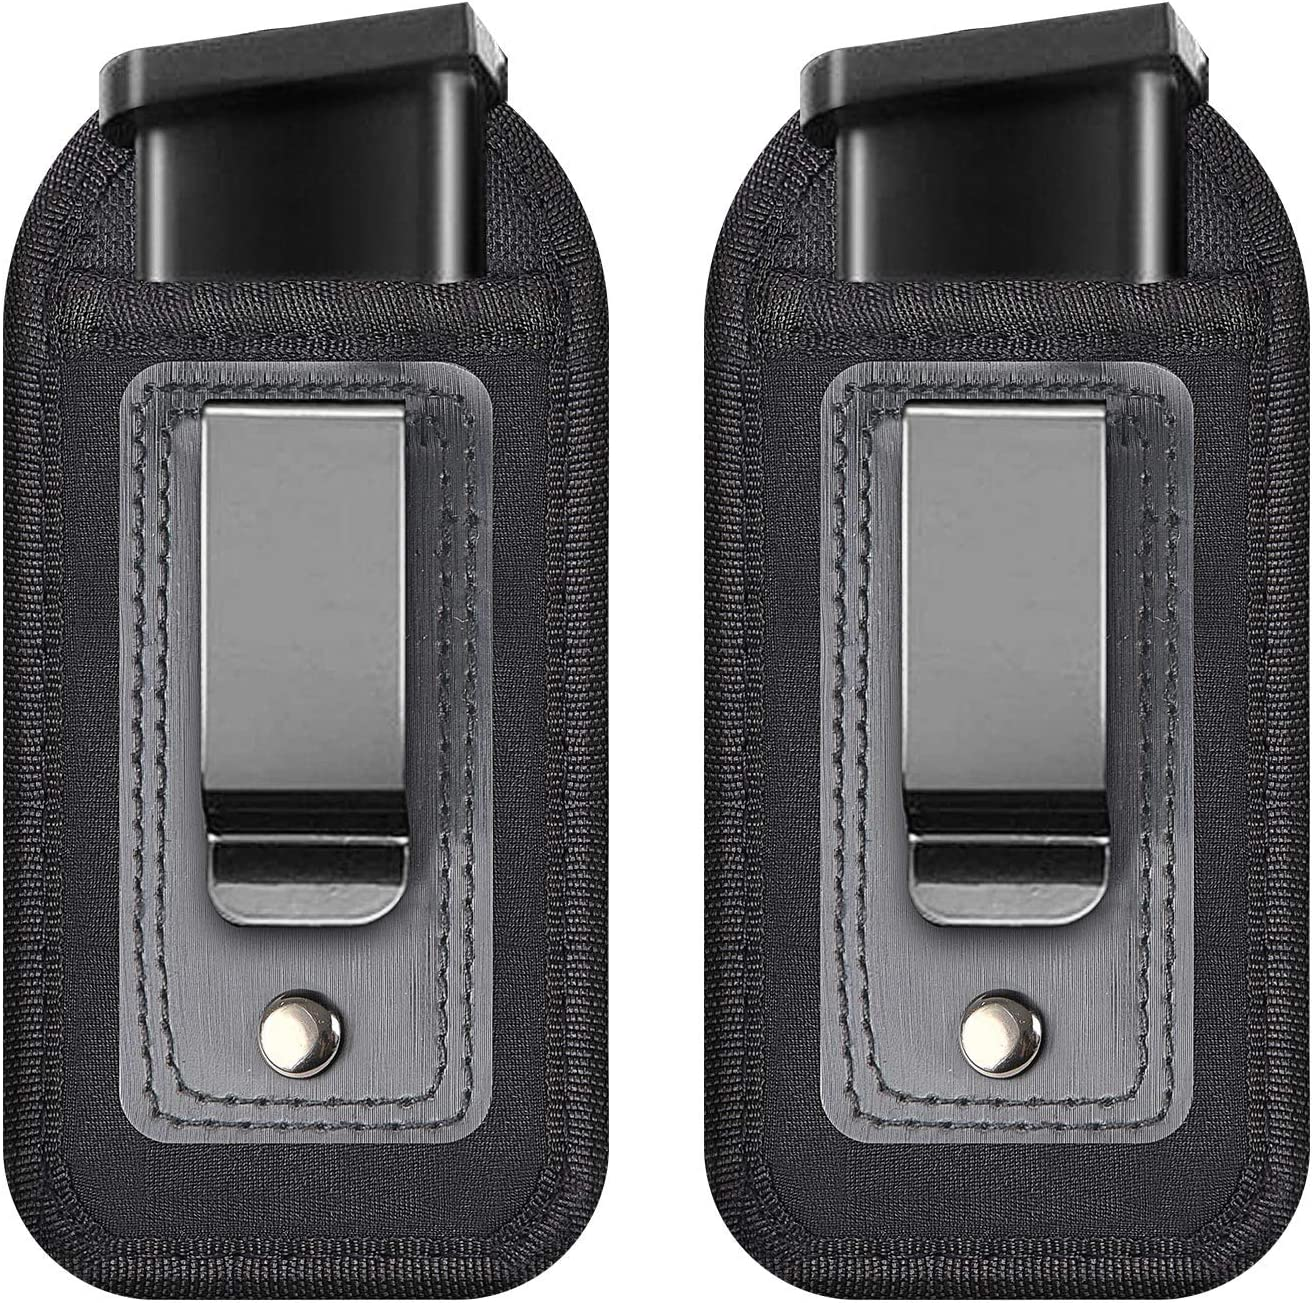 TrendGate Universal Magazine Holster, 2 Pcs IWB Inside Waistband Pistol Mag Holster Pouch Concealed Carry 9mm .40 .45 .380, Glock 19 43 17 Sig 1911 S&W M&P Springfield Fits 7 10 15 Round Ammo Clips